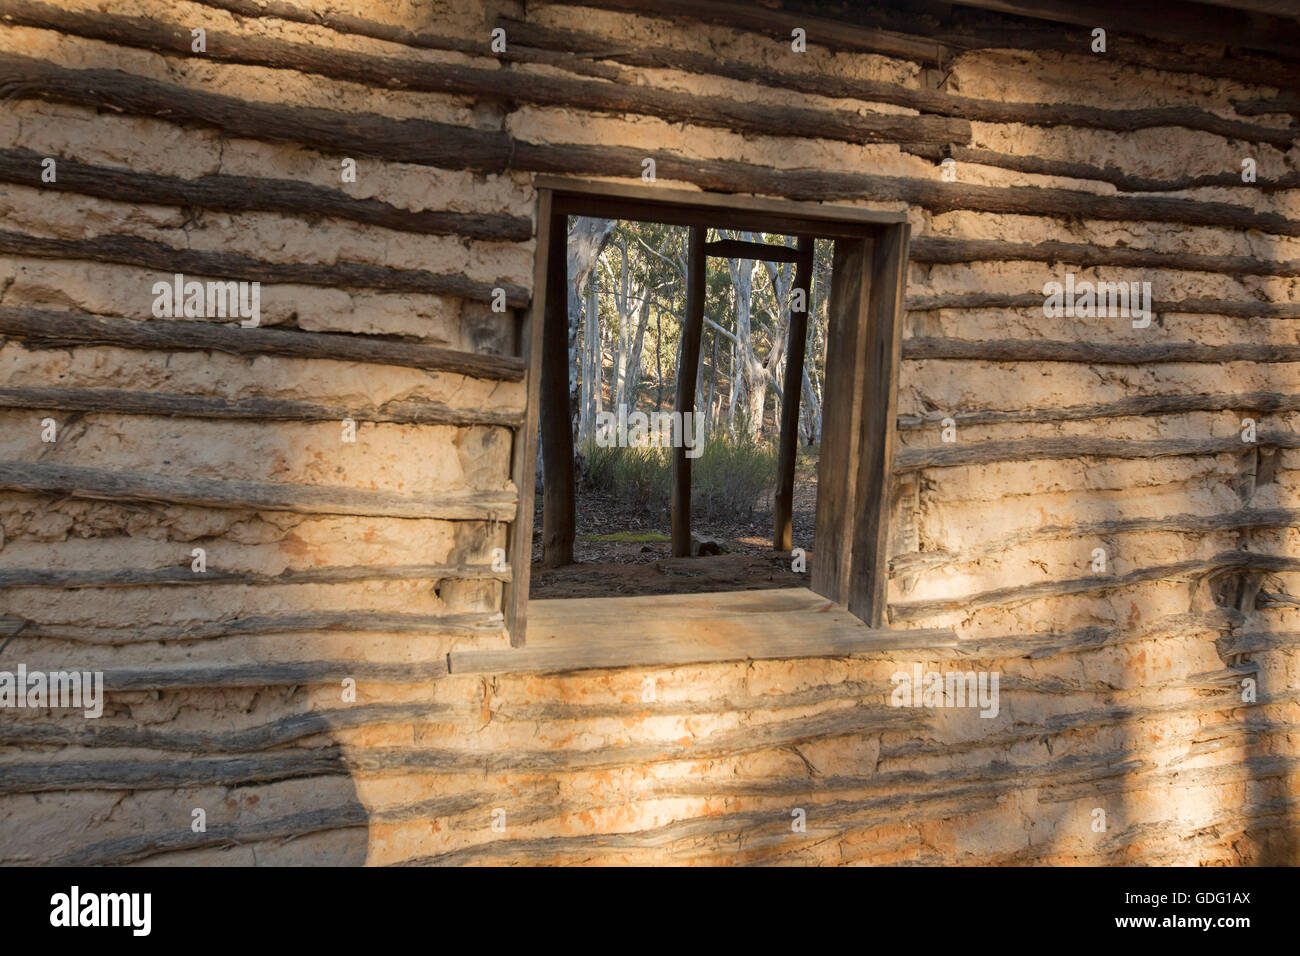 Walls & window of building made with wattle & daub showing a simple inexpensive method of construction with - Stock Image